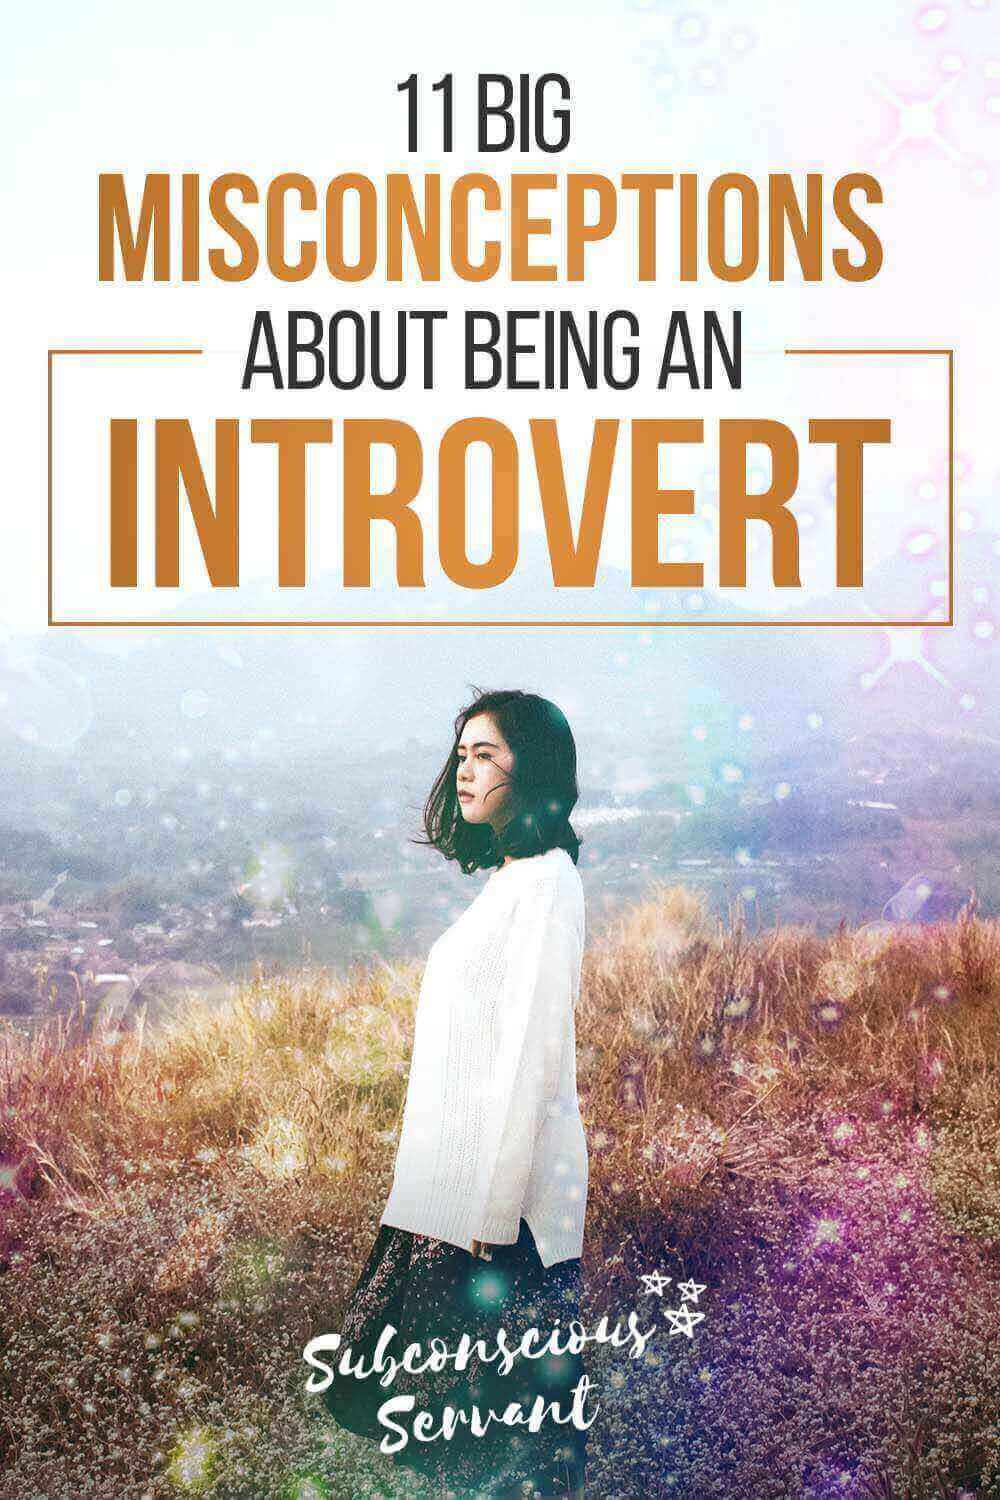 11 Big Misconceptions About Being an Introvert